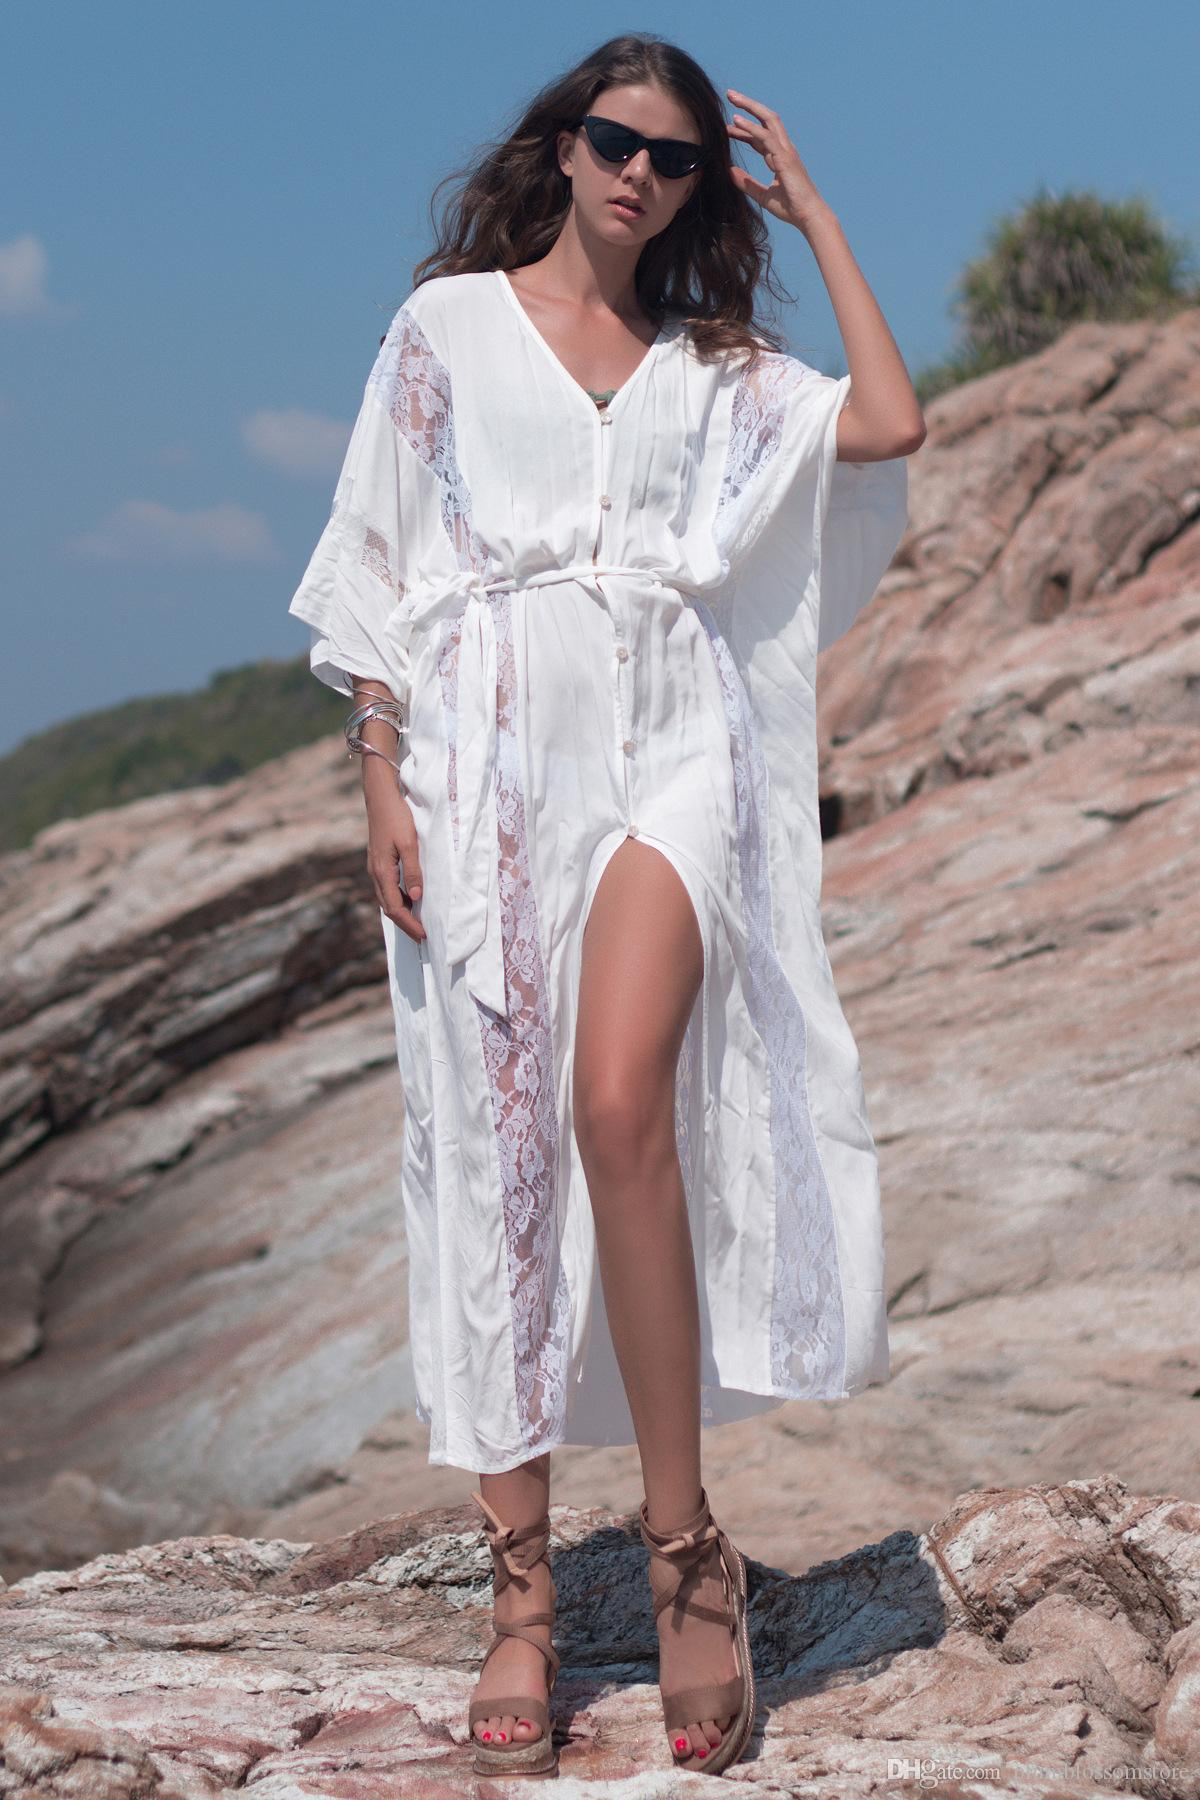 Tunics for beach Long Lace Beach Dress Swimwear Women Swim Cover up Plus size Lace Embroidery Cardigan Kaftan Holiday Beach Cover up